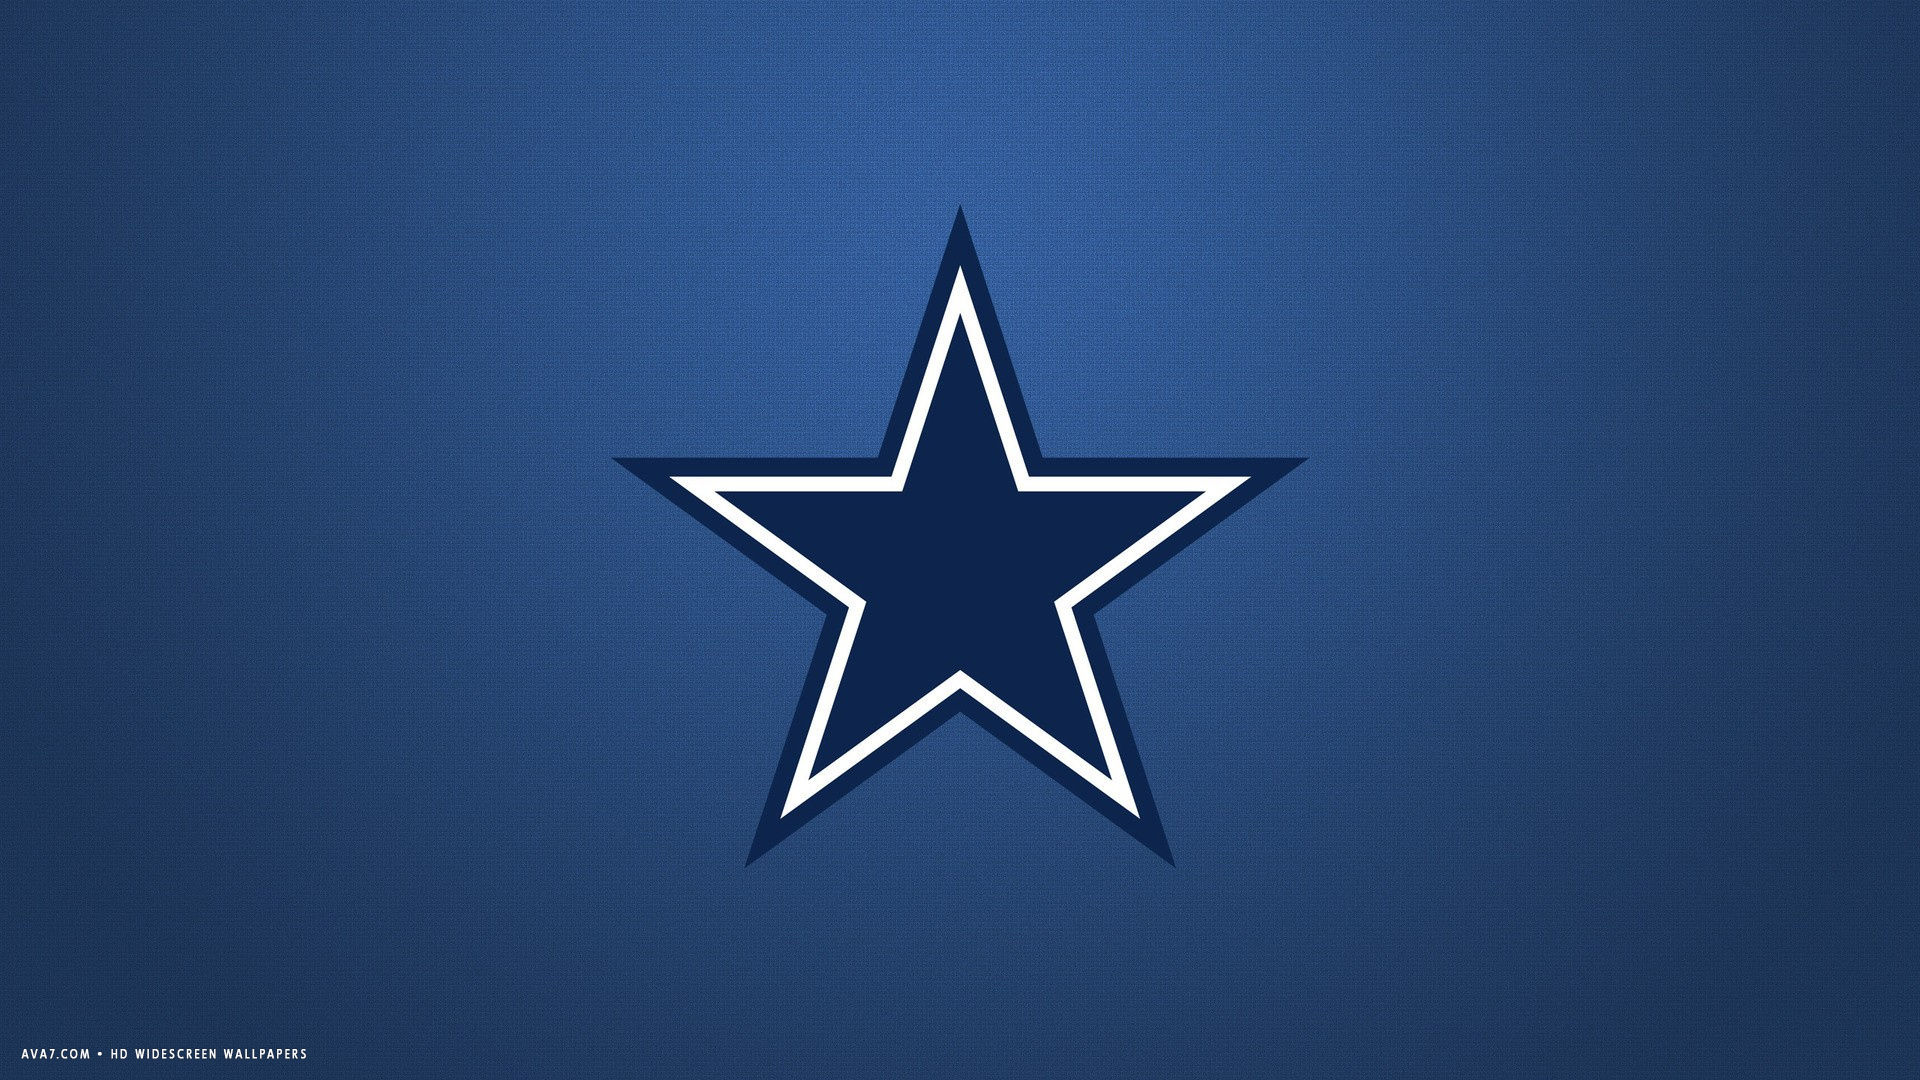 Dallas Cowboys Nfl Football Team Hd Widescreen Wallpaper